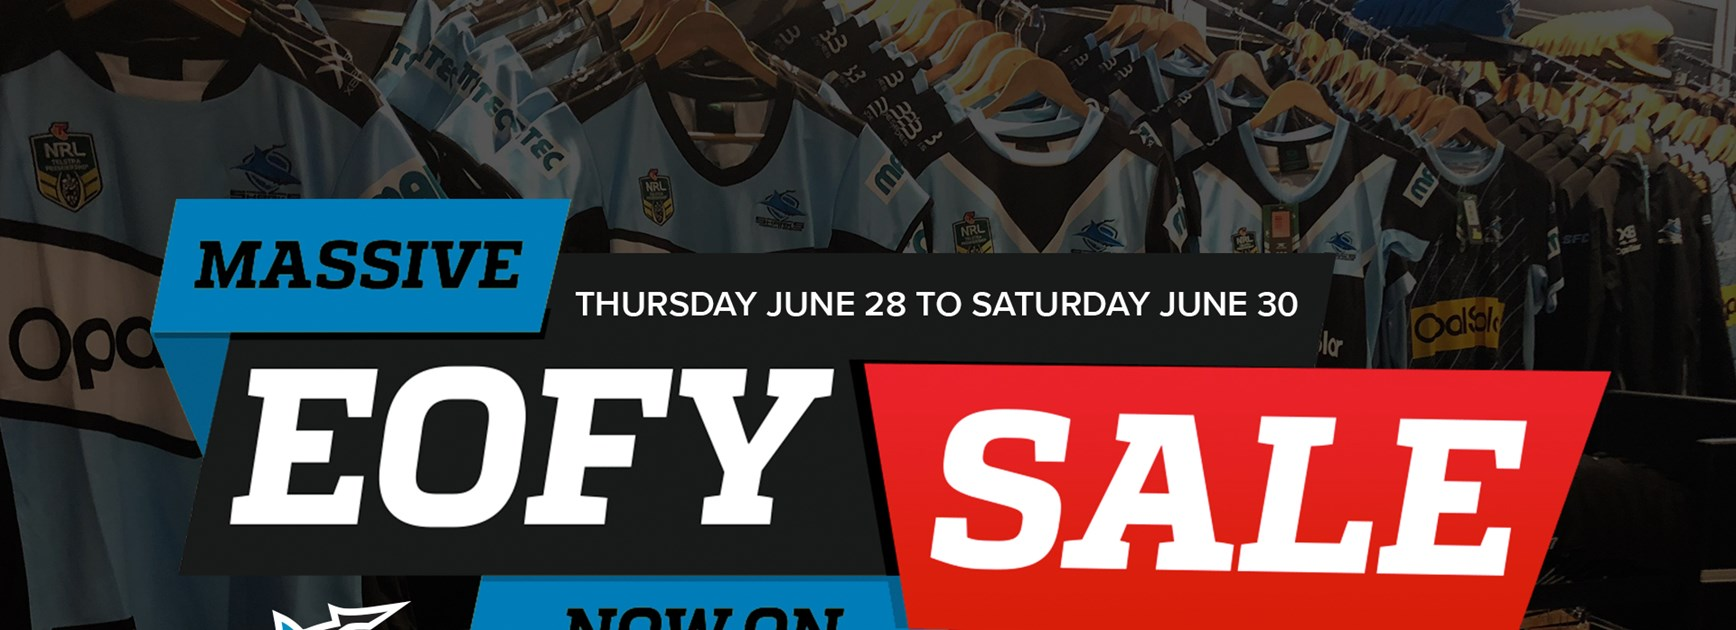 Sharks Merchandise Sale - Last Day Saturday